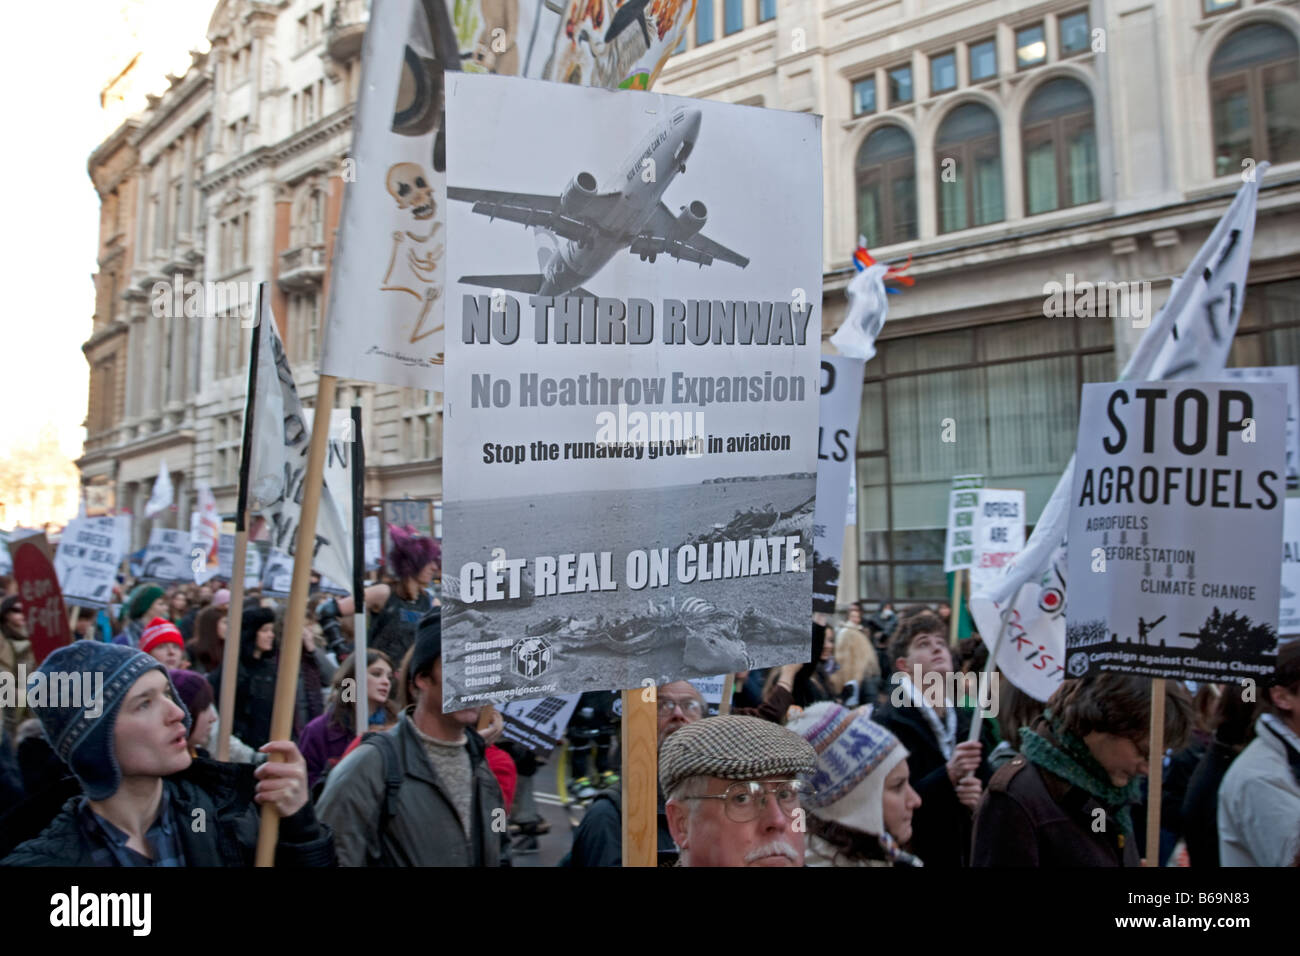 Campaigners on Climate Change March with No Third Runway Heathrow banner London December 2008 UK - Stock Image